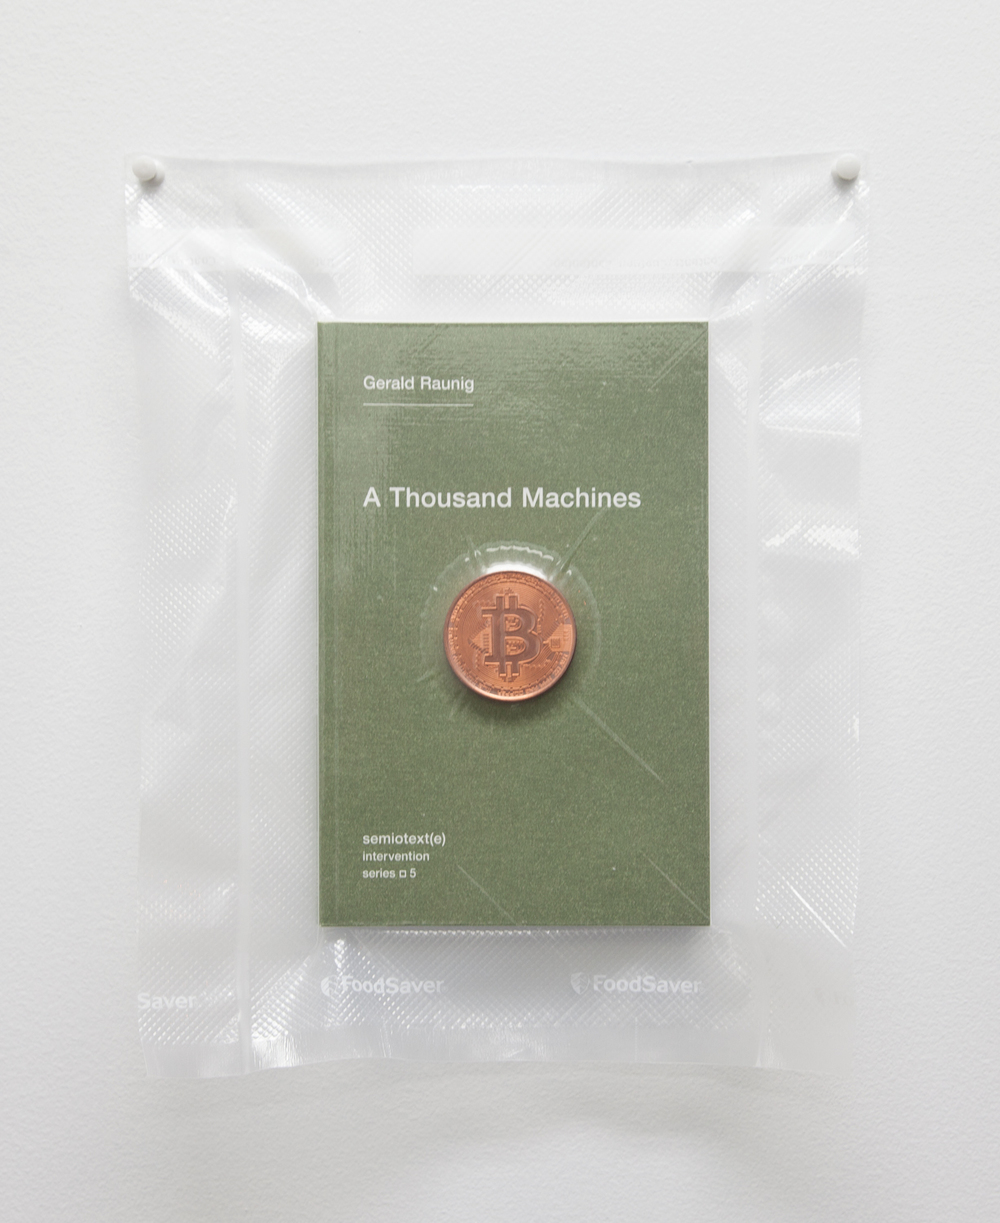 Brad Troemel   TSA No Fly List Vacuum Sealed Gerald Raunig, - 'A Thousand Machines' with AOCS, copper Bitcoin  , 2013      10 x 8 inches